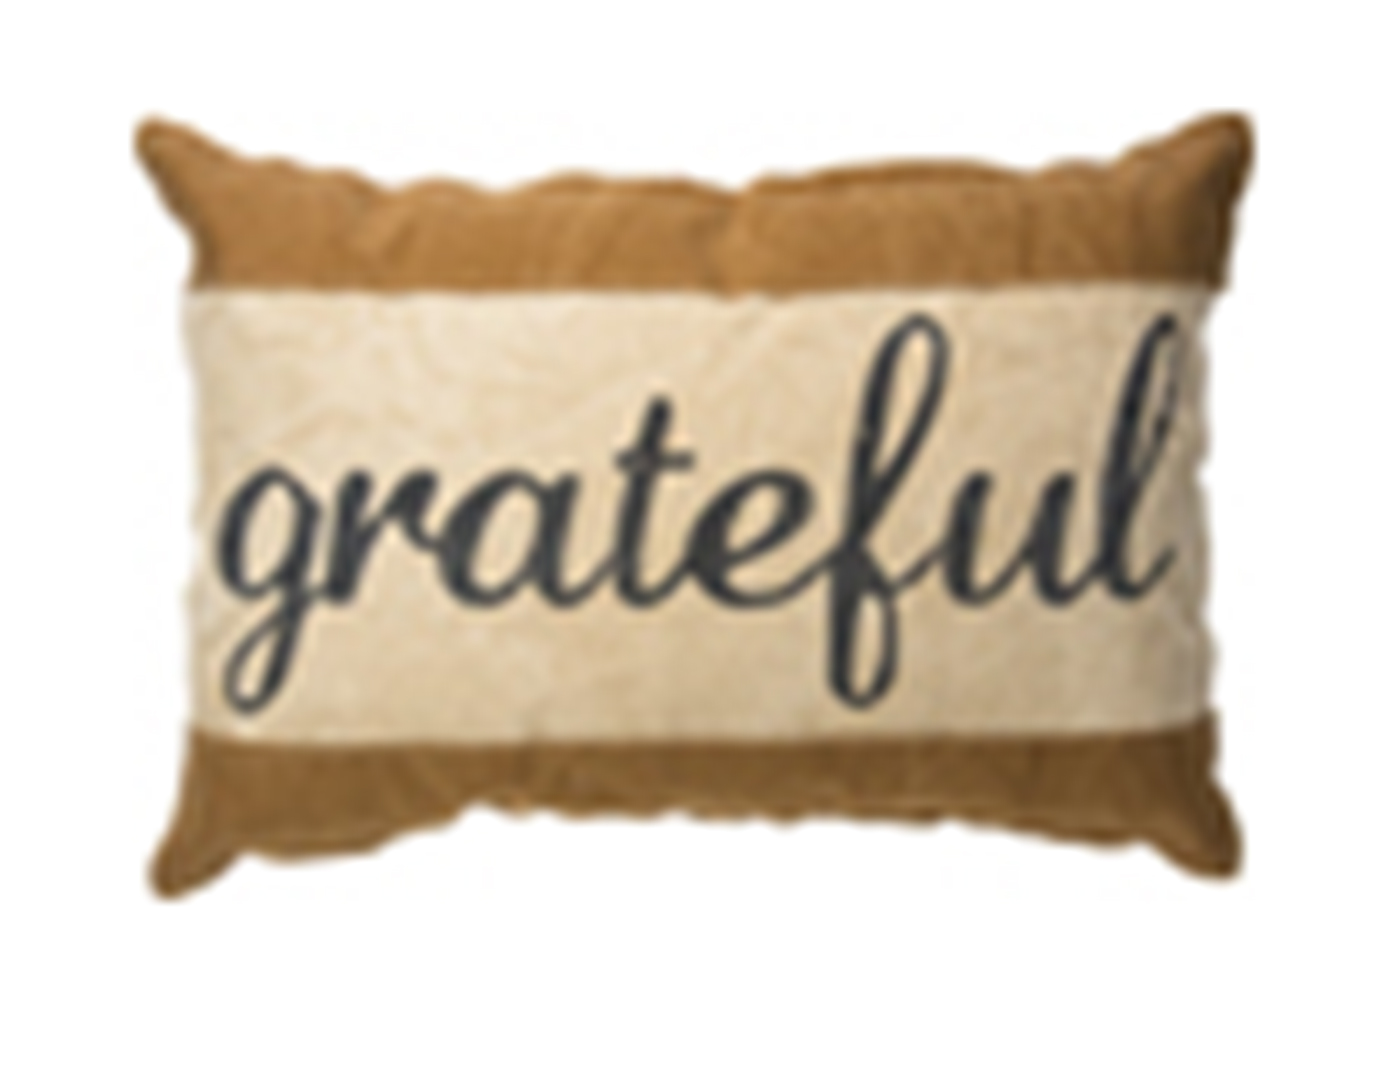 Grateful Pillow 22X14""